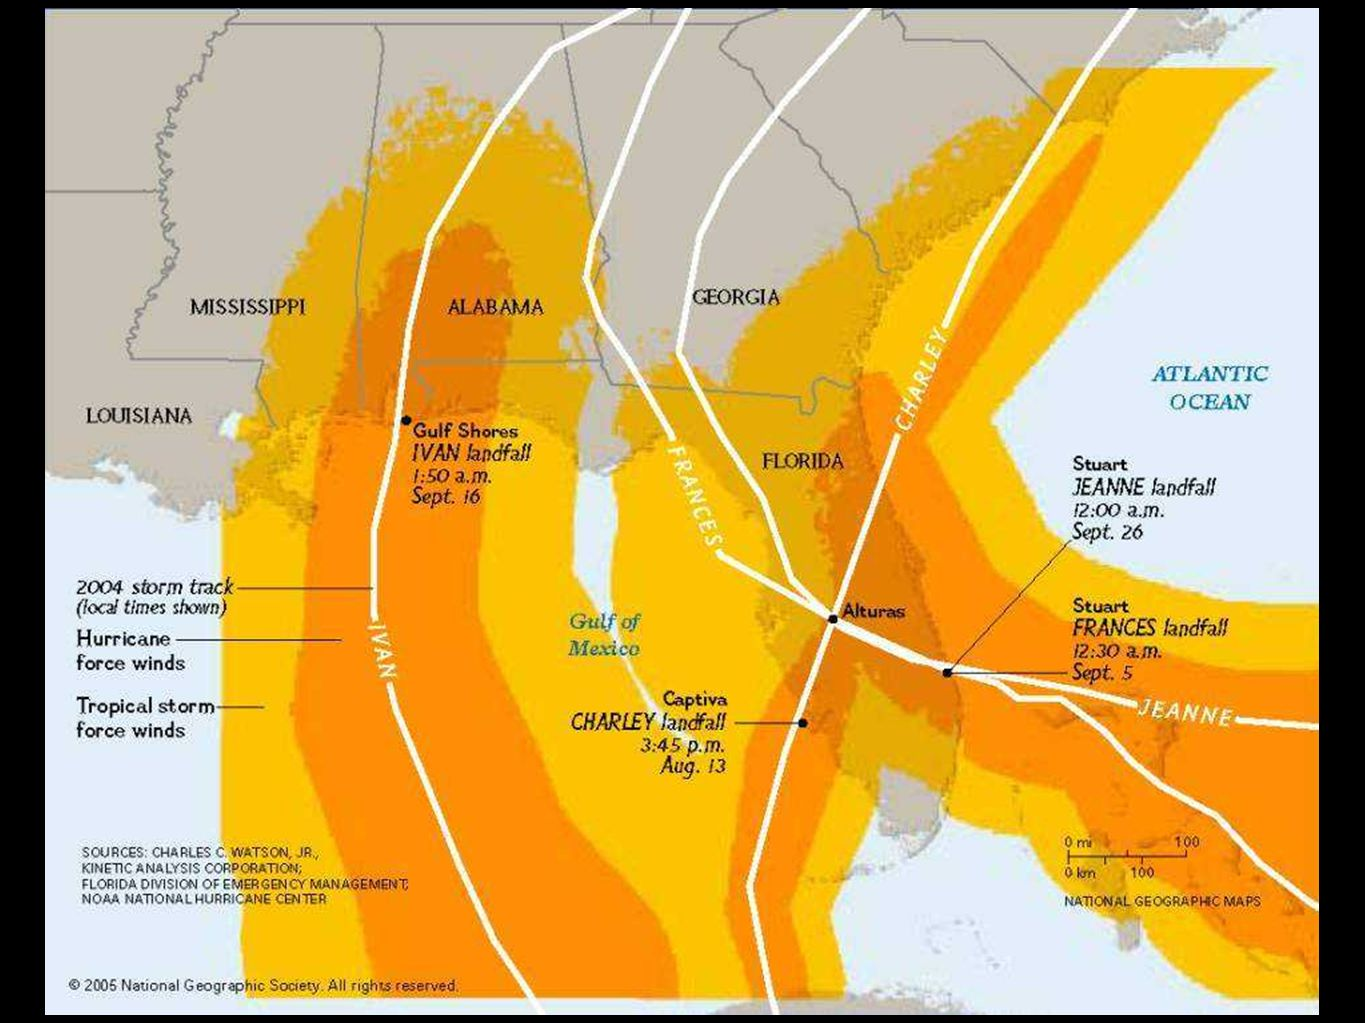 Yellow areas mark the cumulative area which experienced Tropical Storm force winds in 2004. Orange areas mark the cumulative area which experienced huracán force winds in 2004. Little of Florida was left untouched.